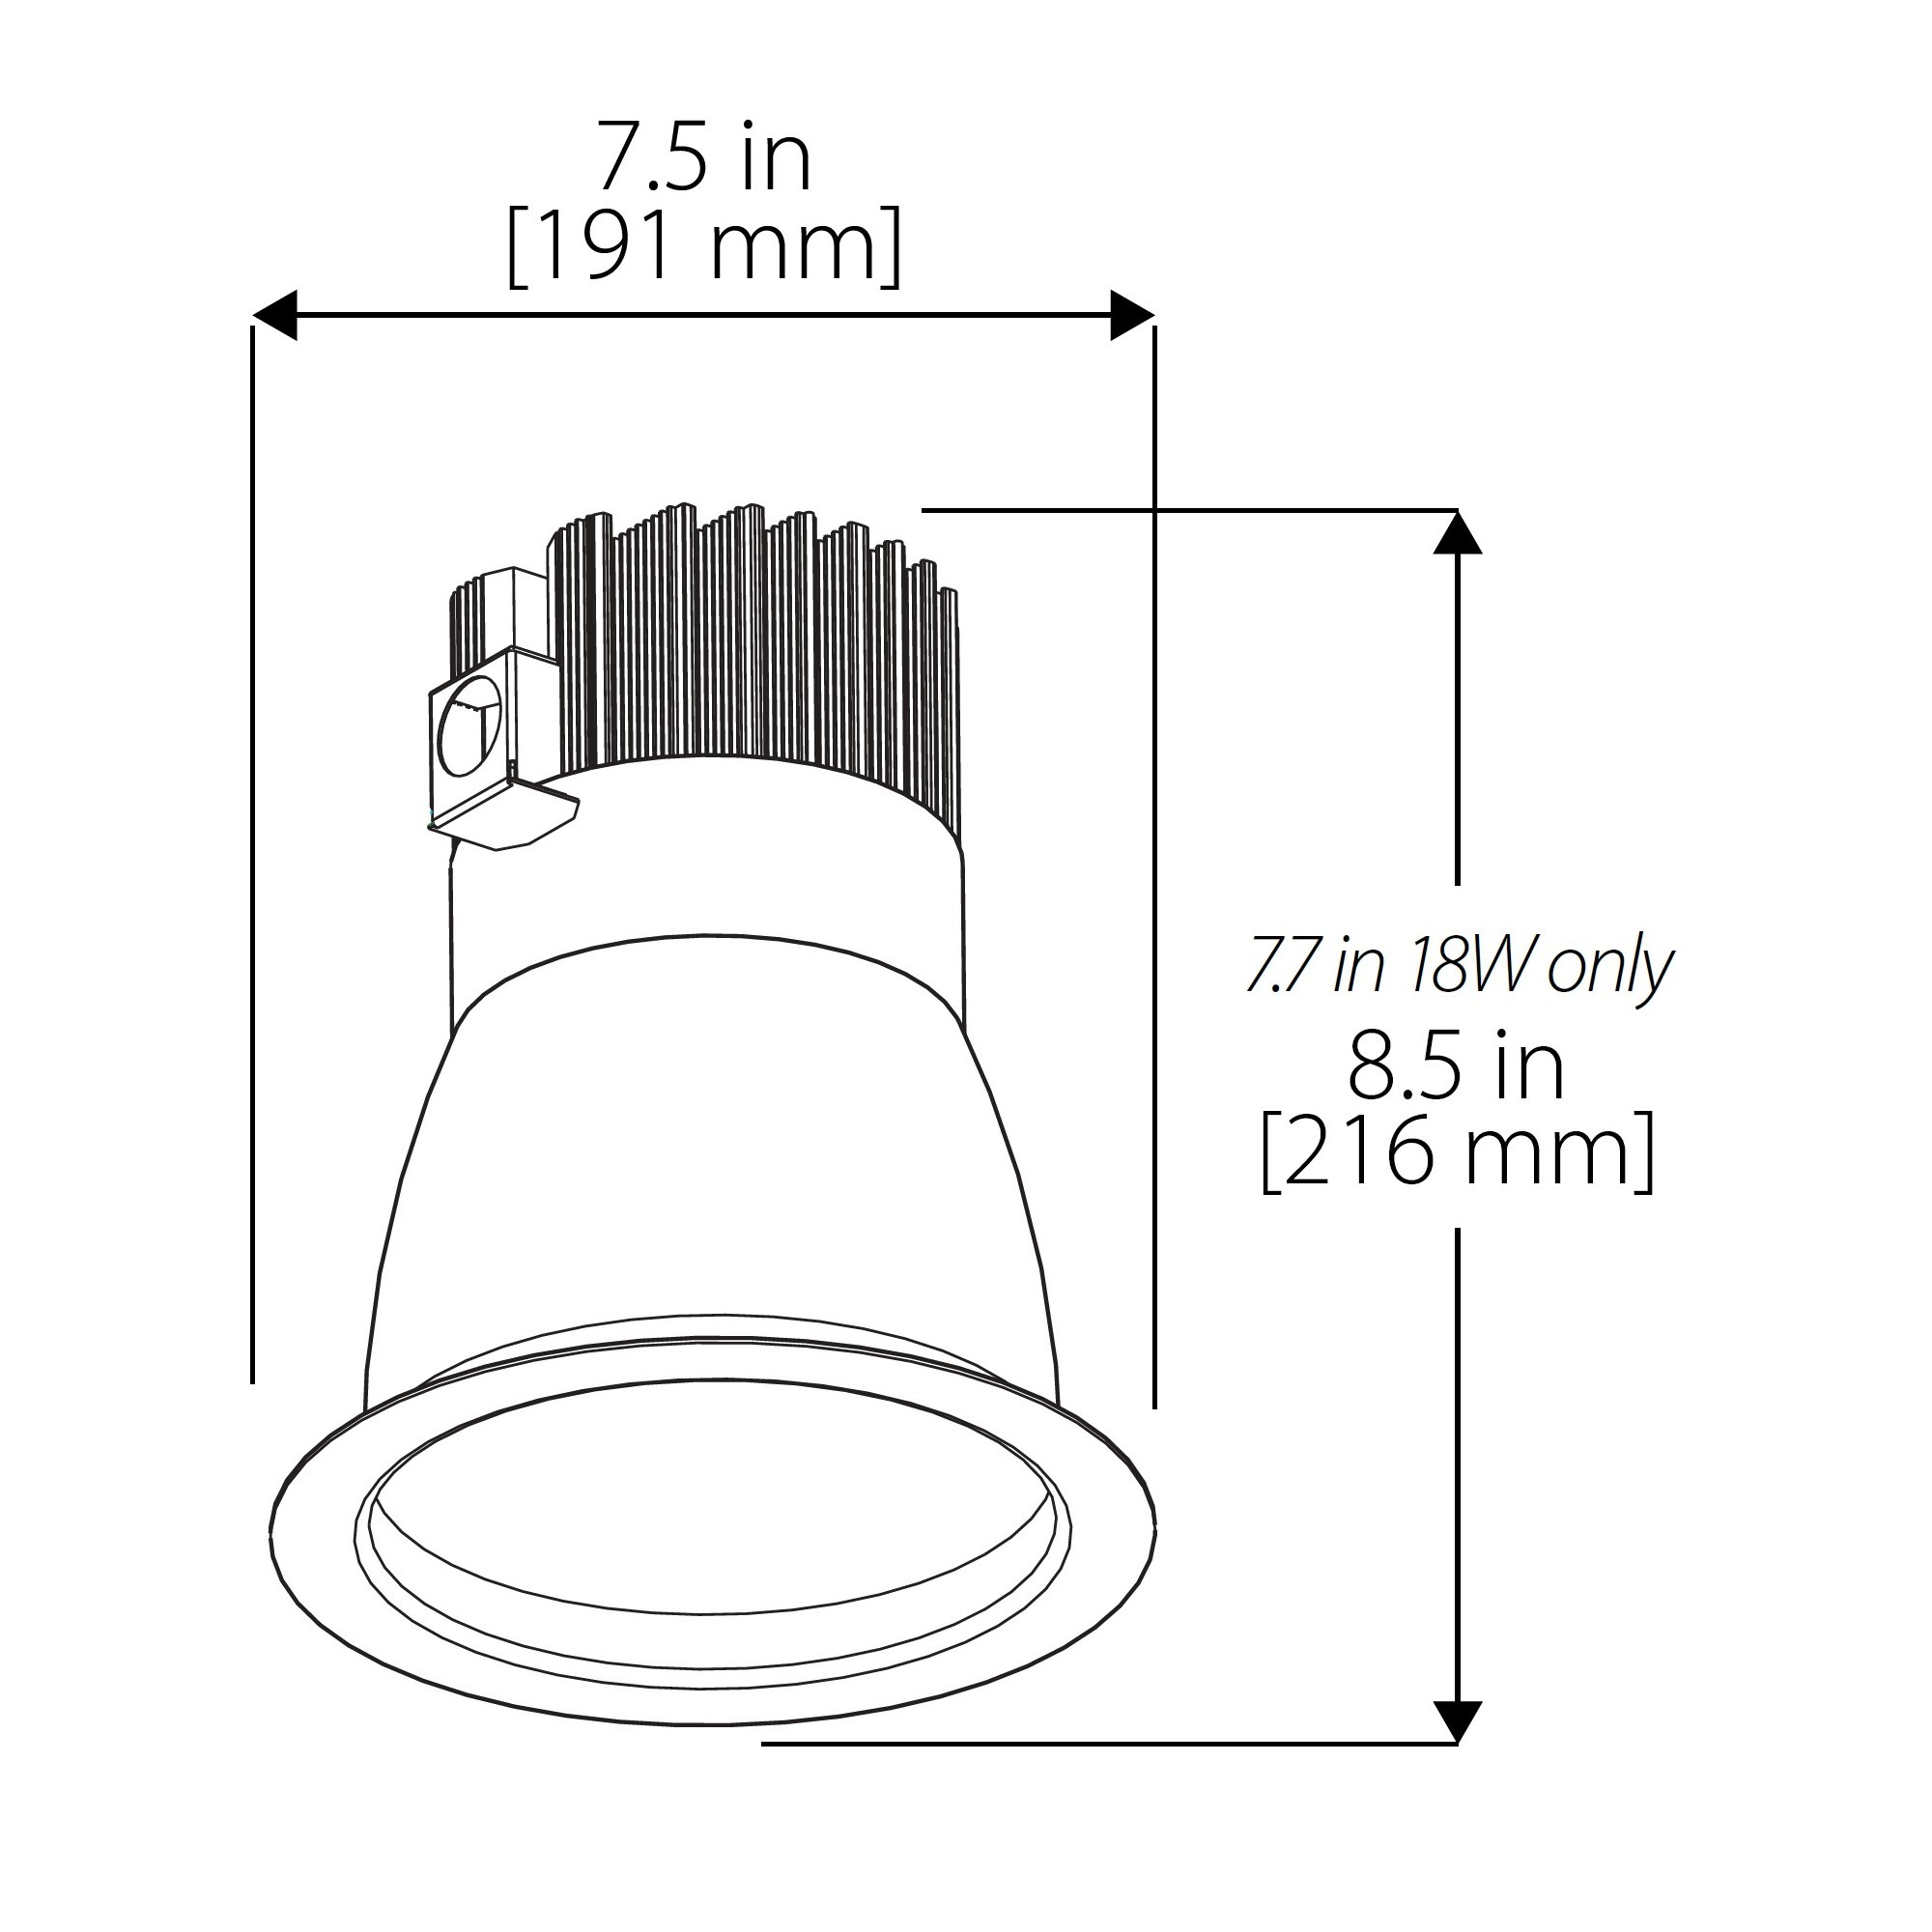 Nicor Cdr6 27w 35k Sn 4 Inch Commercial Led Downlight 14 Wat